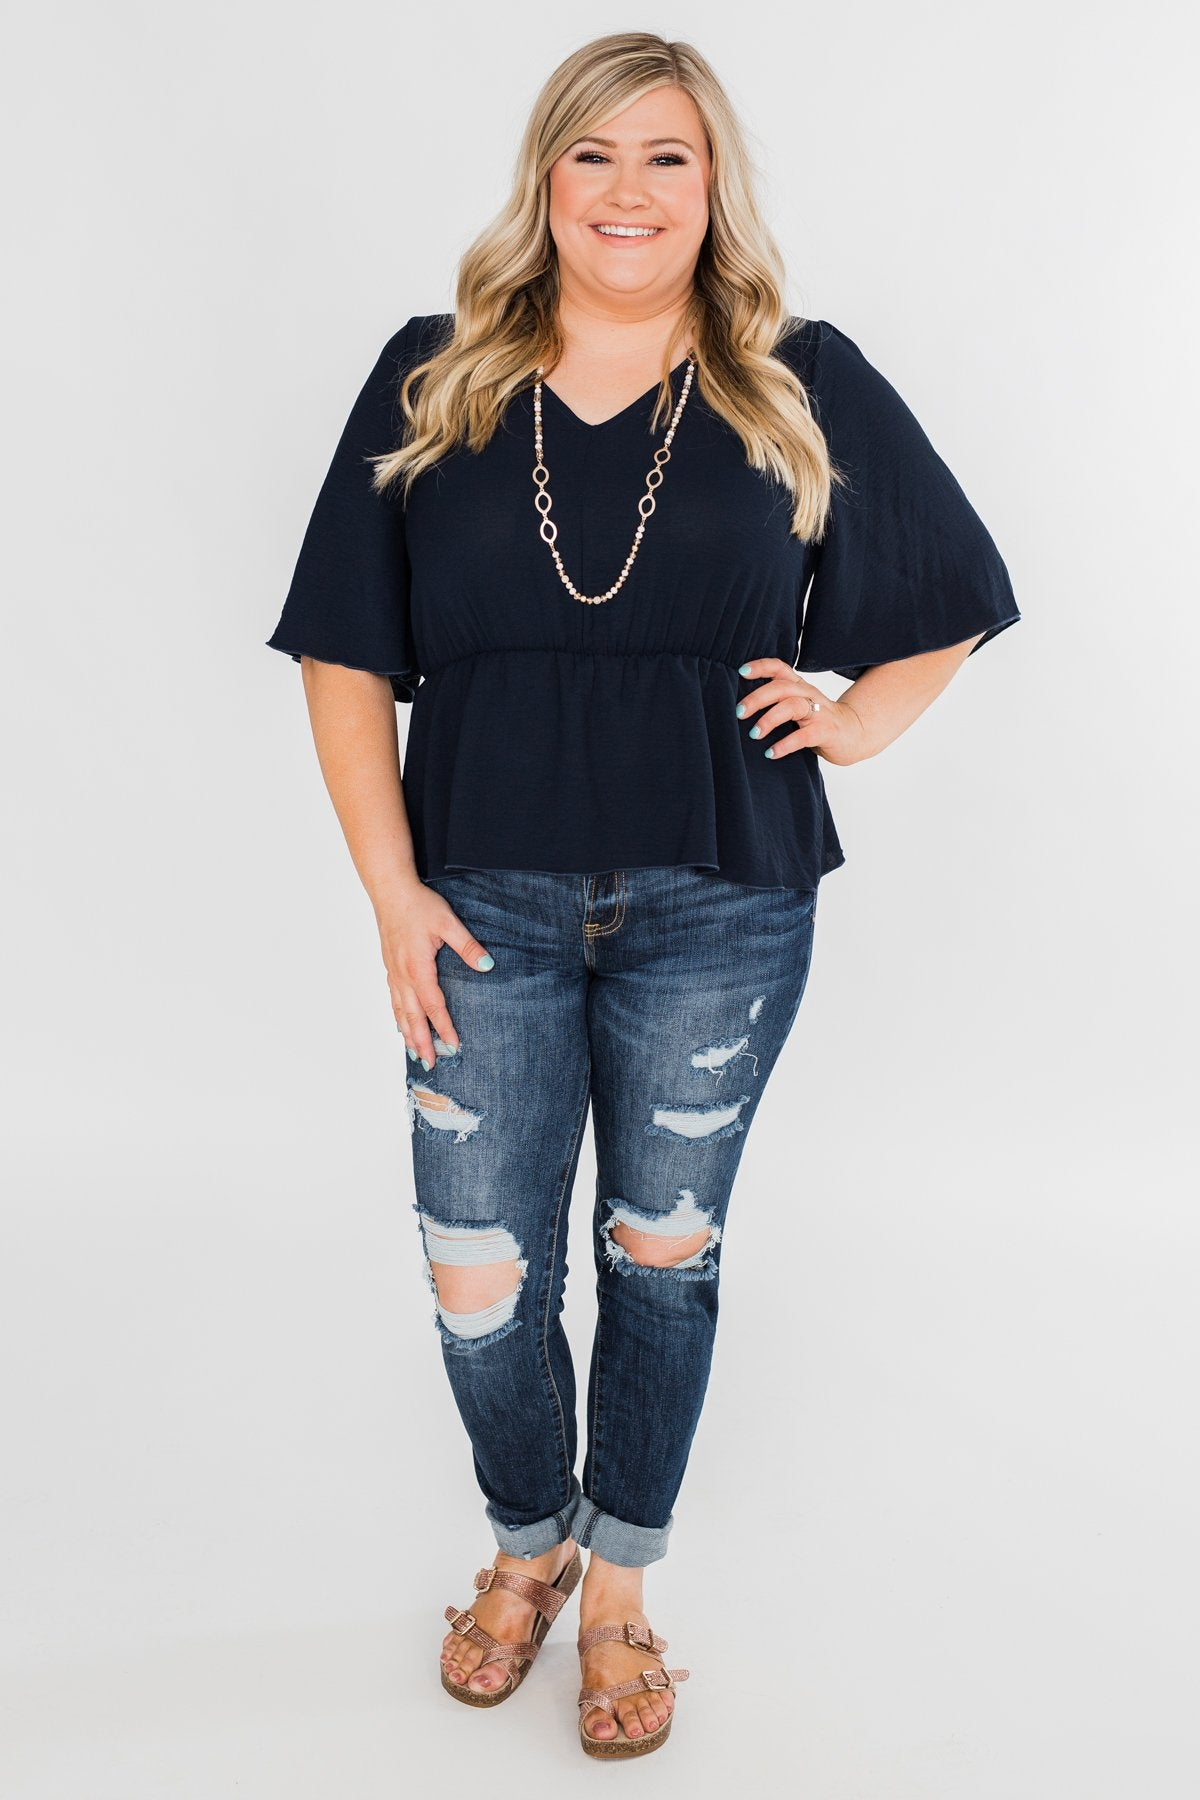 Hold You Tight Cinched Waist Blouse- Navy